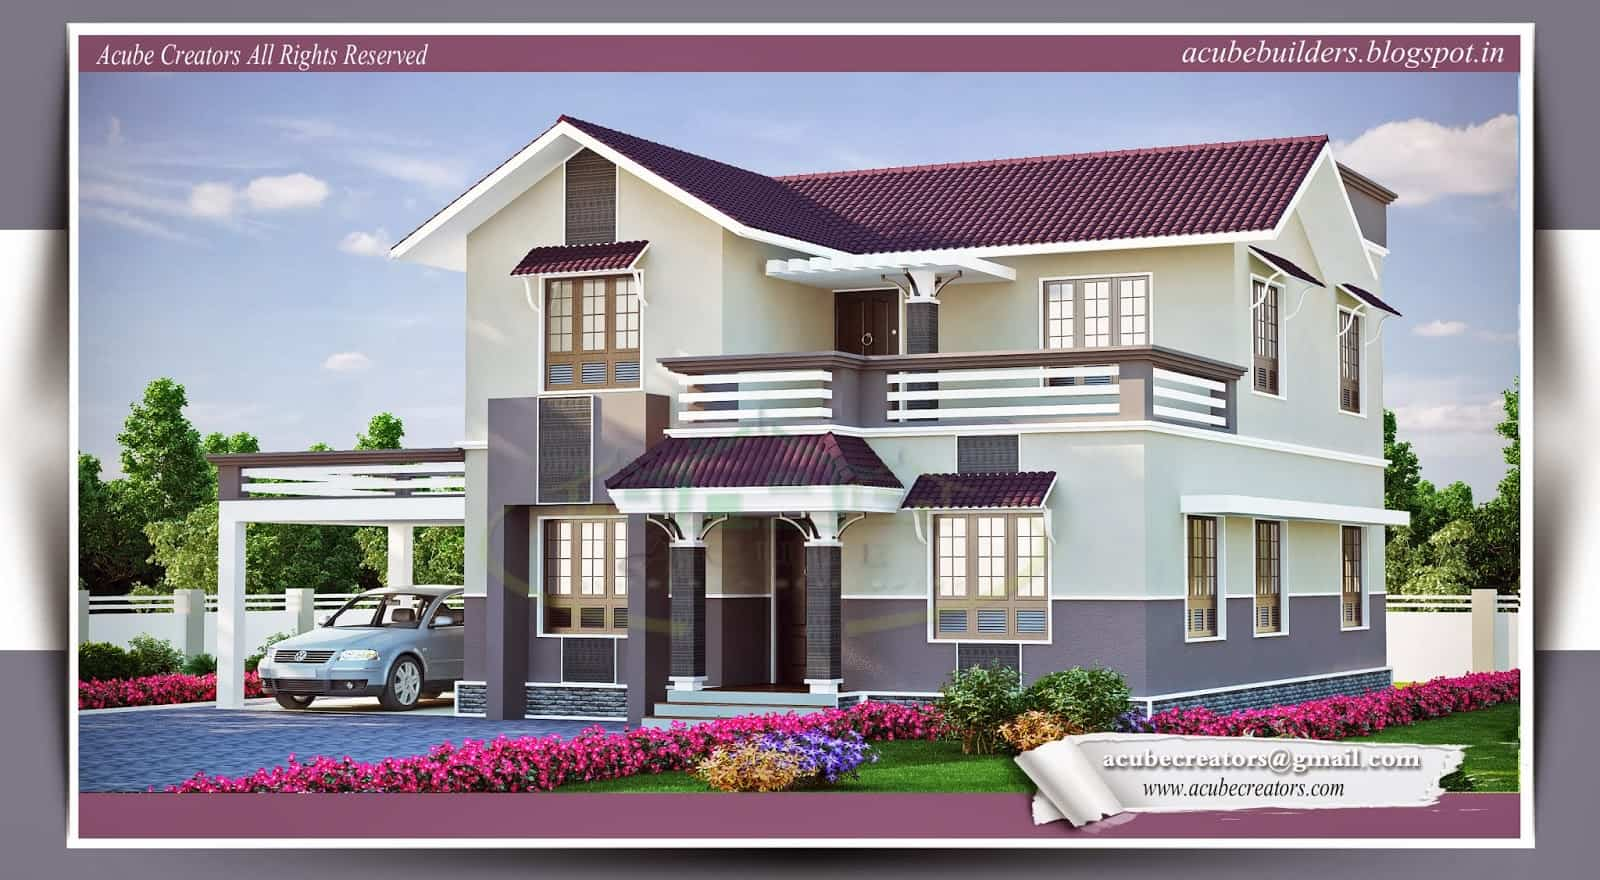 This Is A Really Stunning And Beautiful House Design With Lots Of Latest  Facilities.This Kerala Home Elevation Is Built With 4 Bedrooms And 4  Bathrooms.